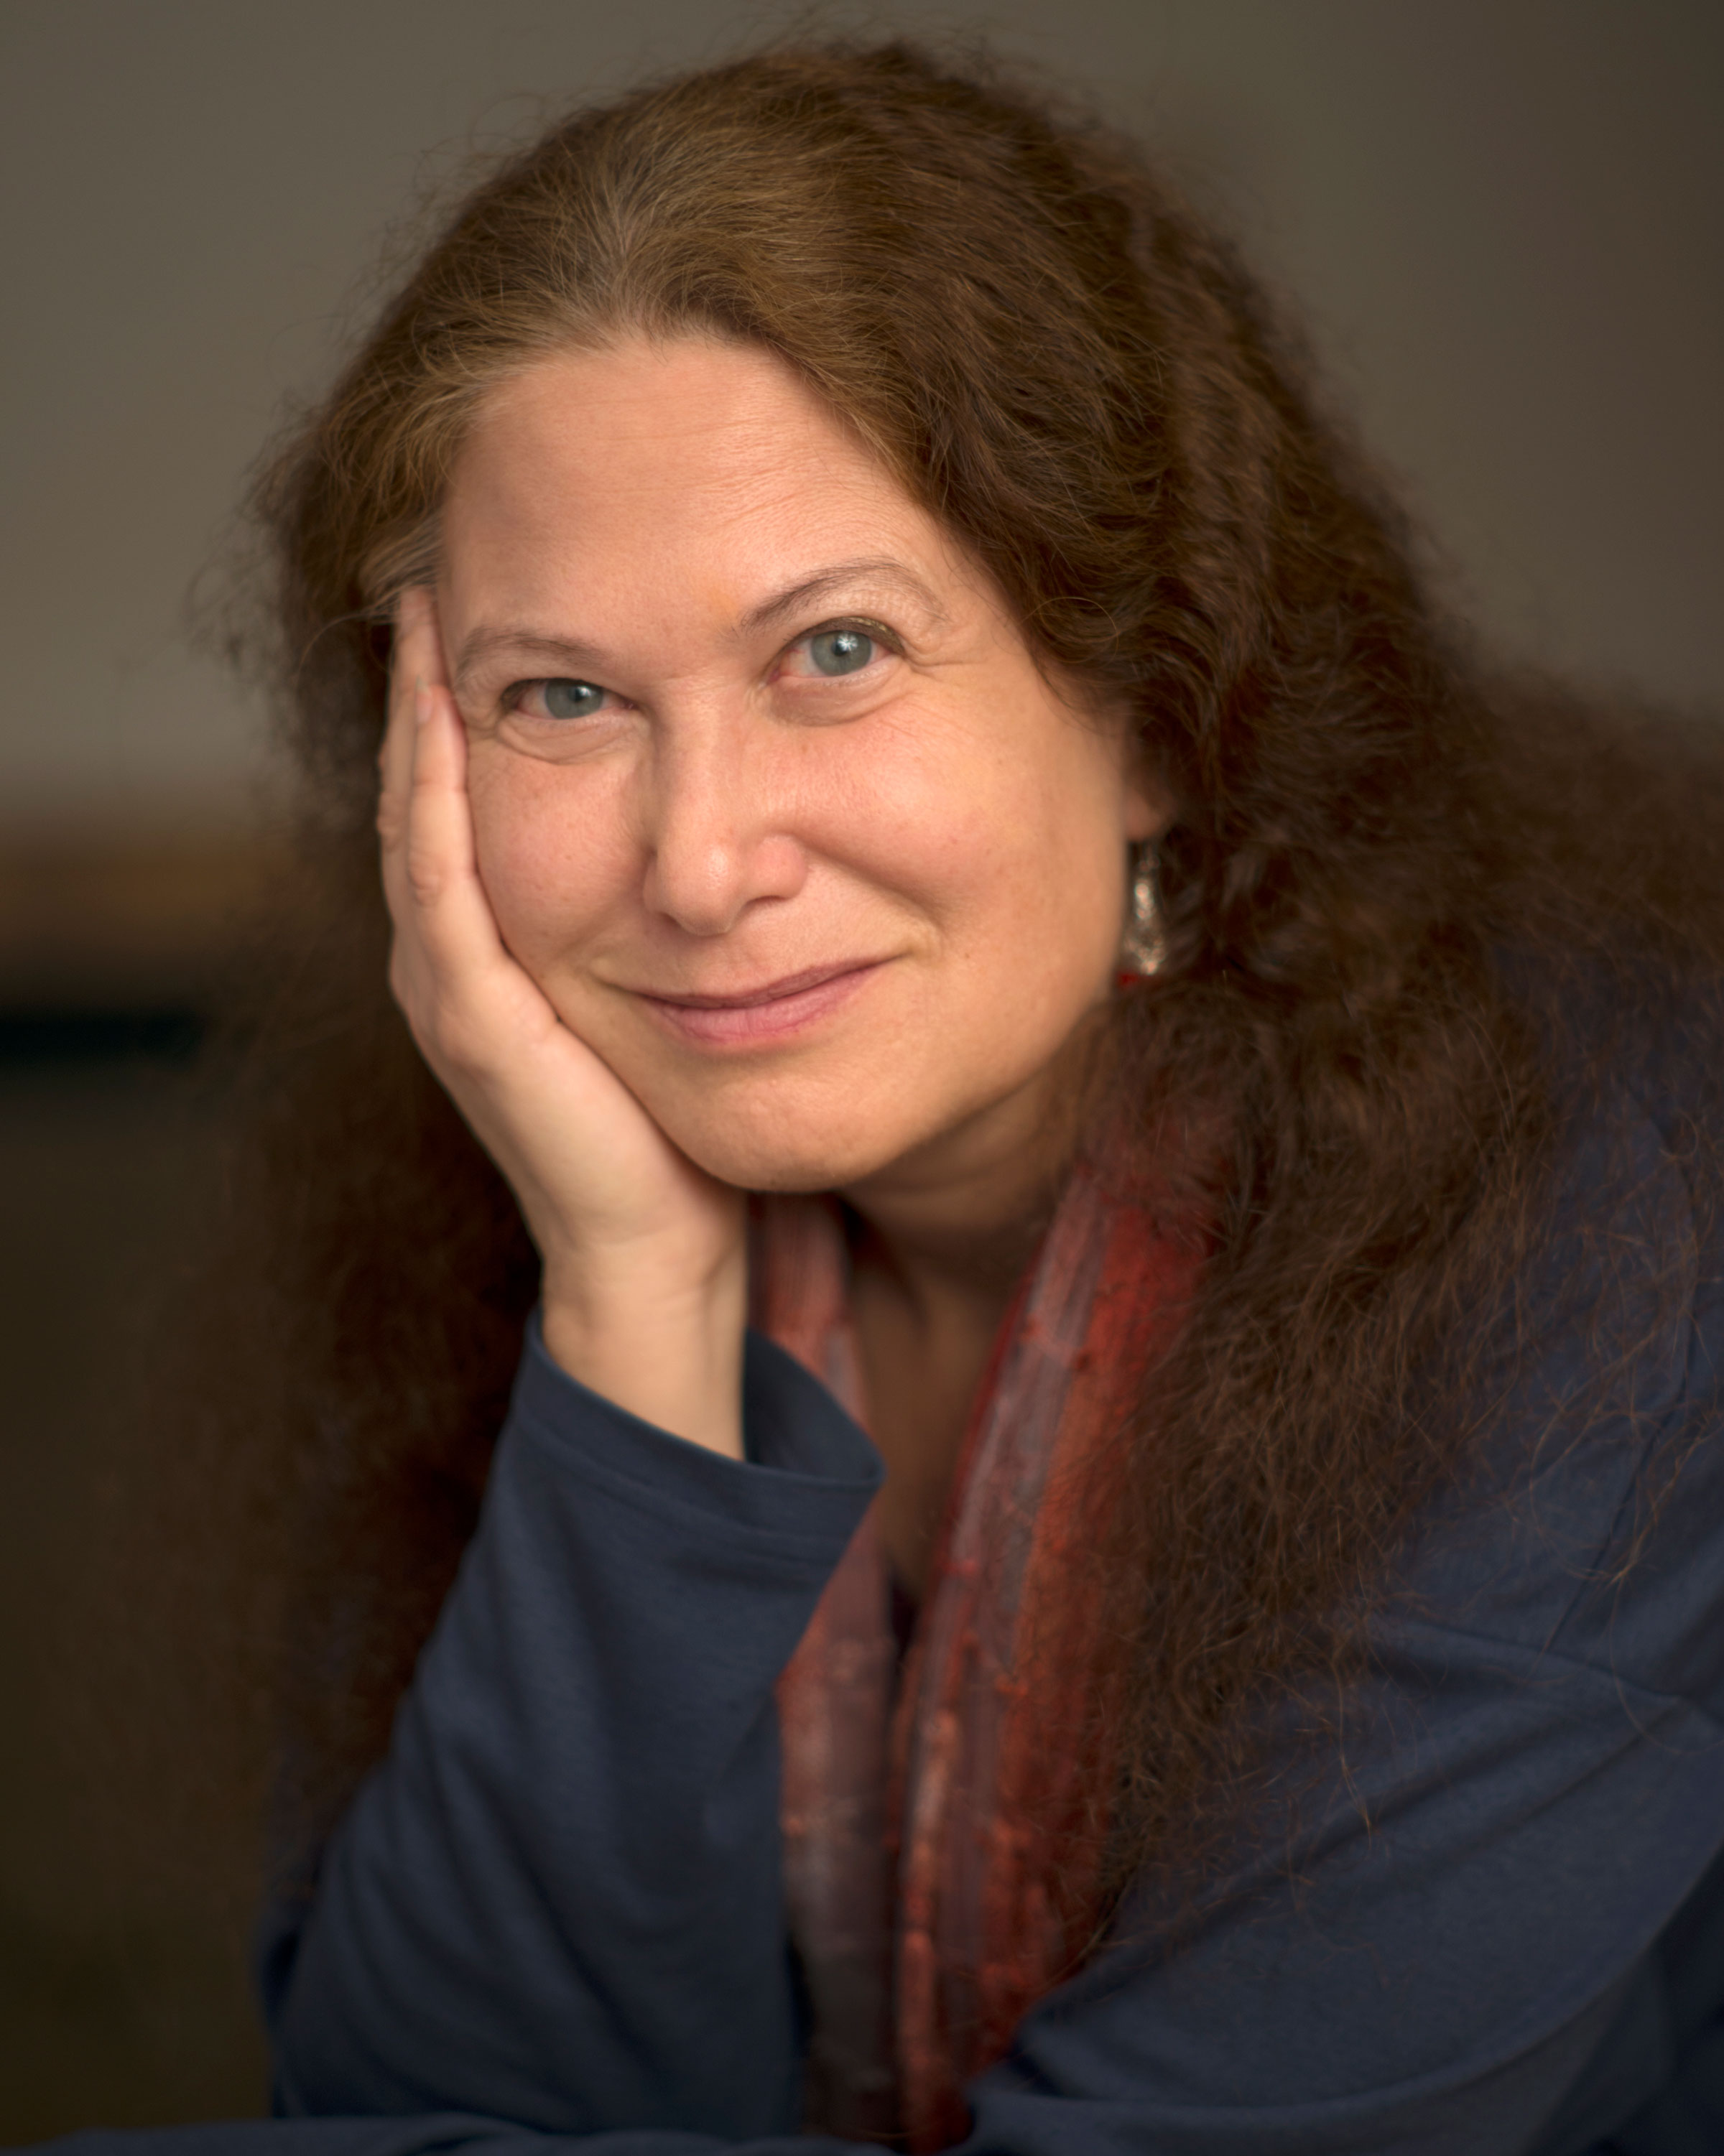 Jane Hirshfield, Photo by Curt Richter